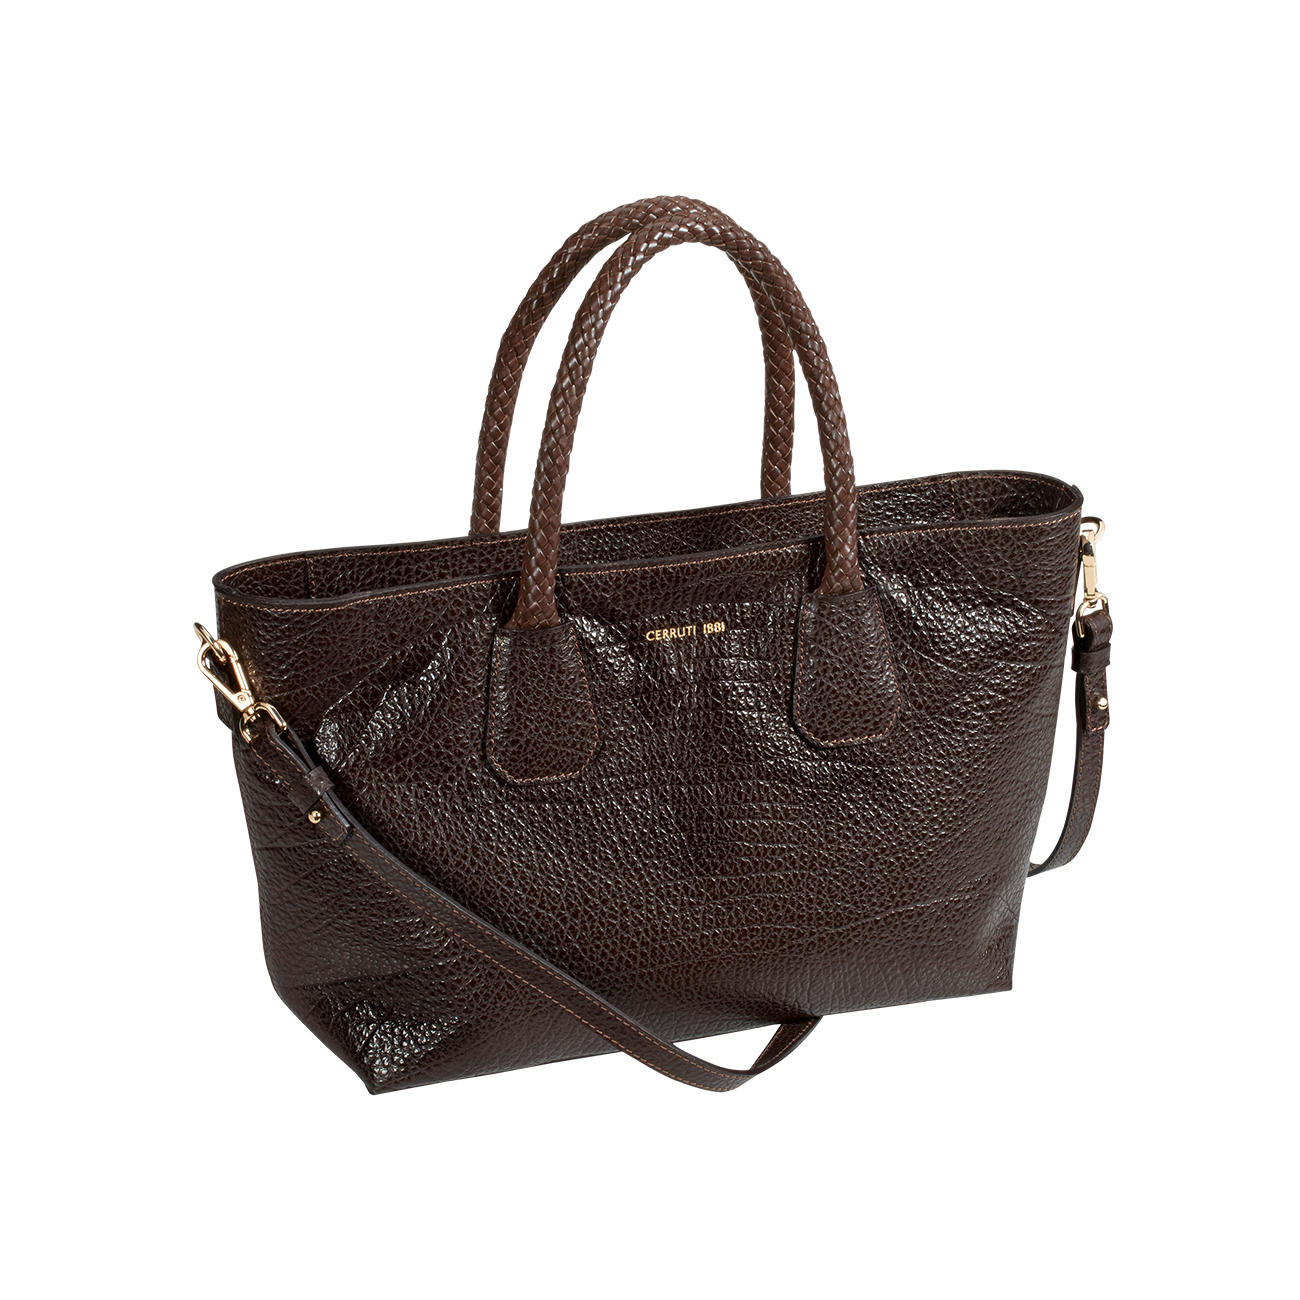 9438933c50 Cerruti 1881 Calf Leather Bag - Both fashionable and classic. And  incredibly versatile. Made